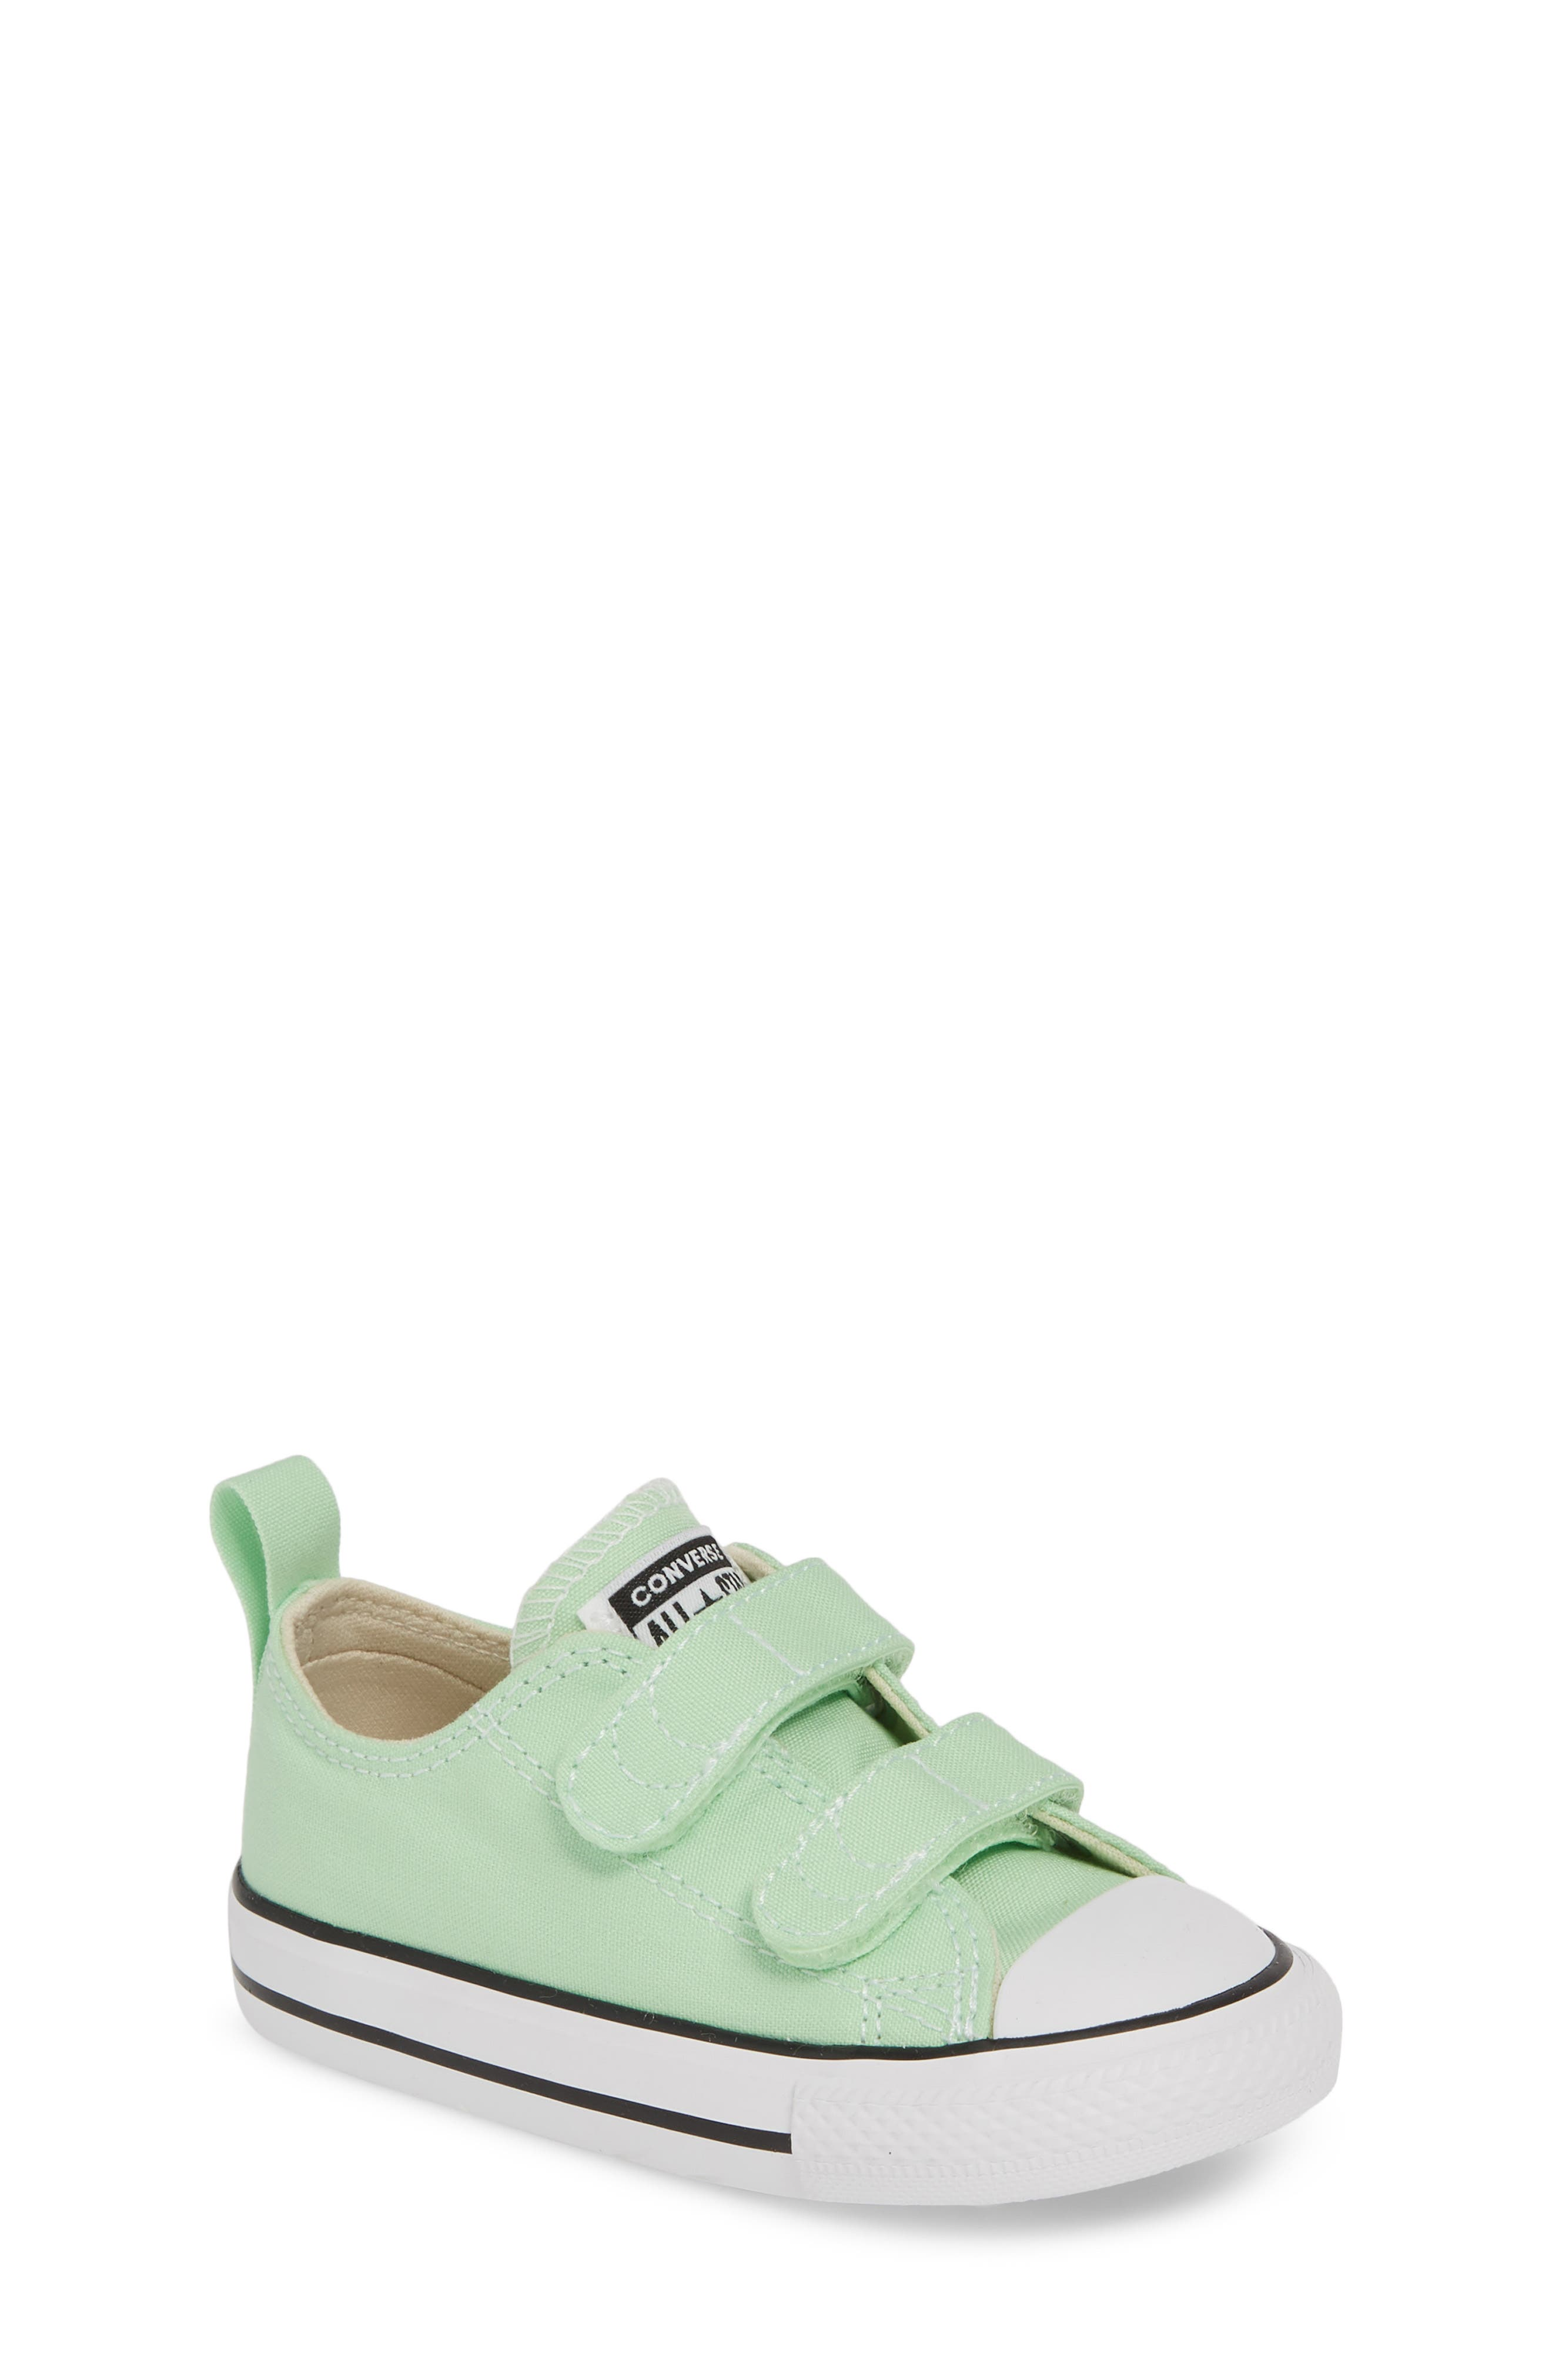 CONVERSE Chuck Taylor<sup>®</sup> 'Double Strap' Sneaker, Main, color, LT. APHID GREEN